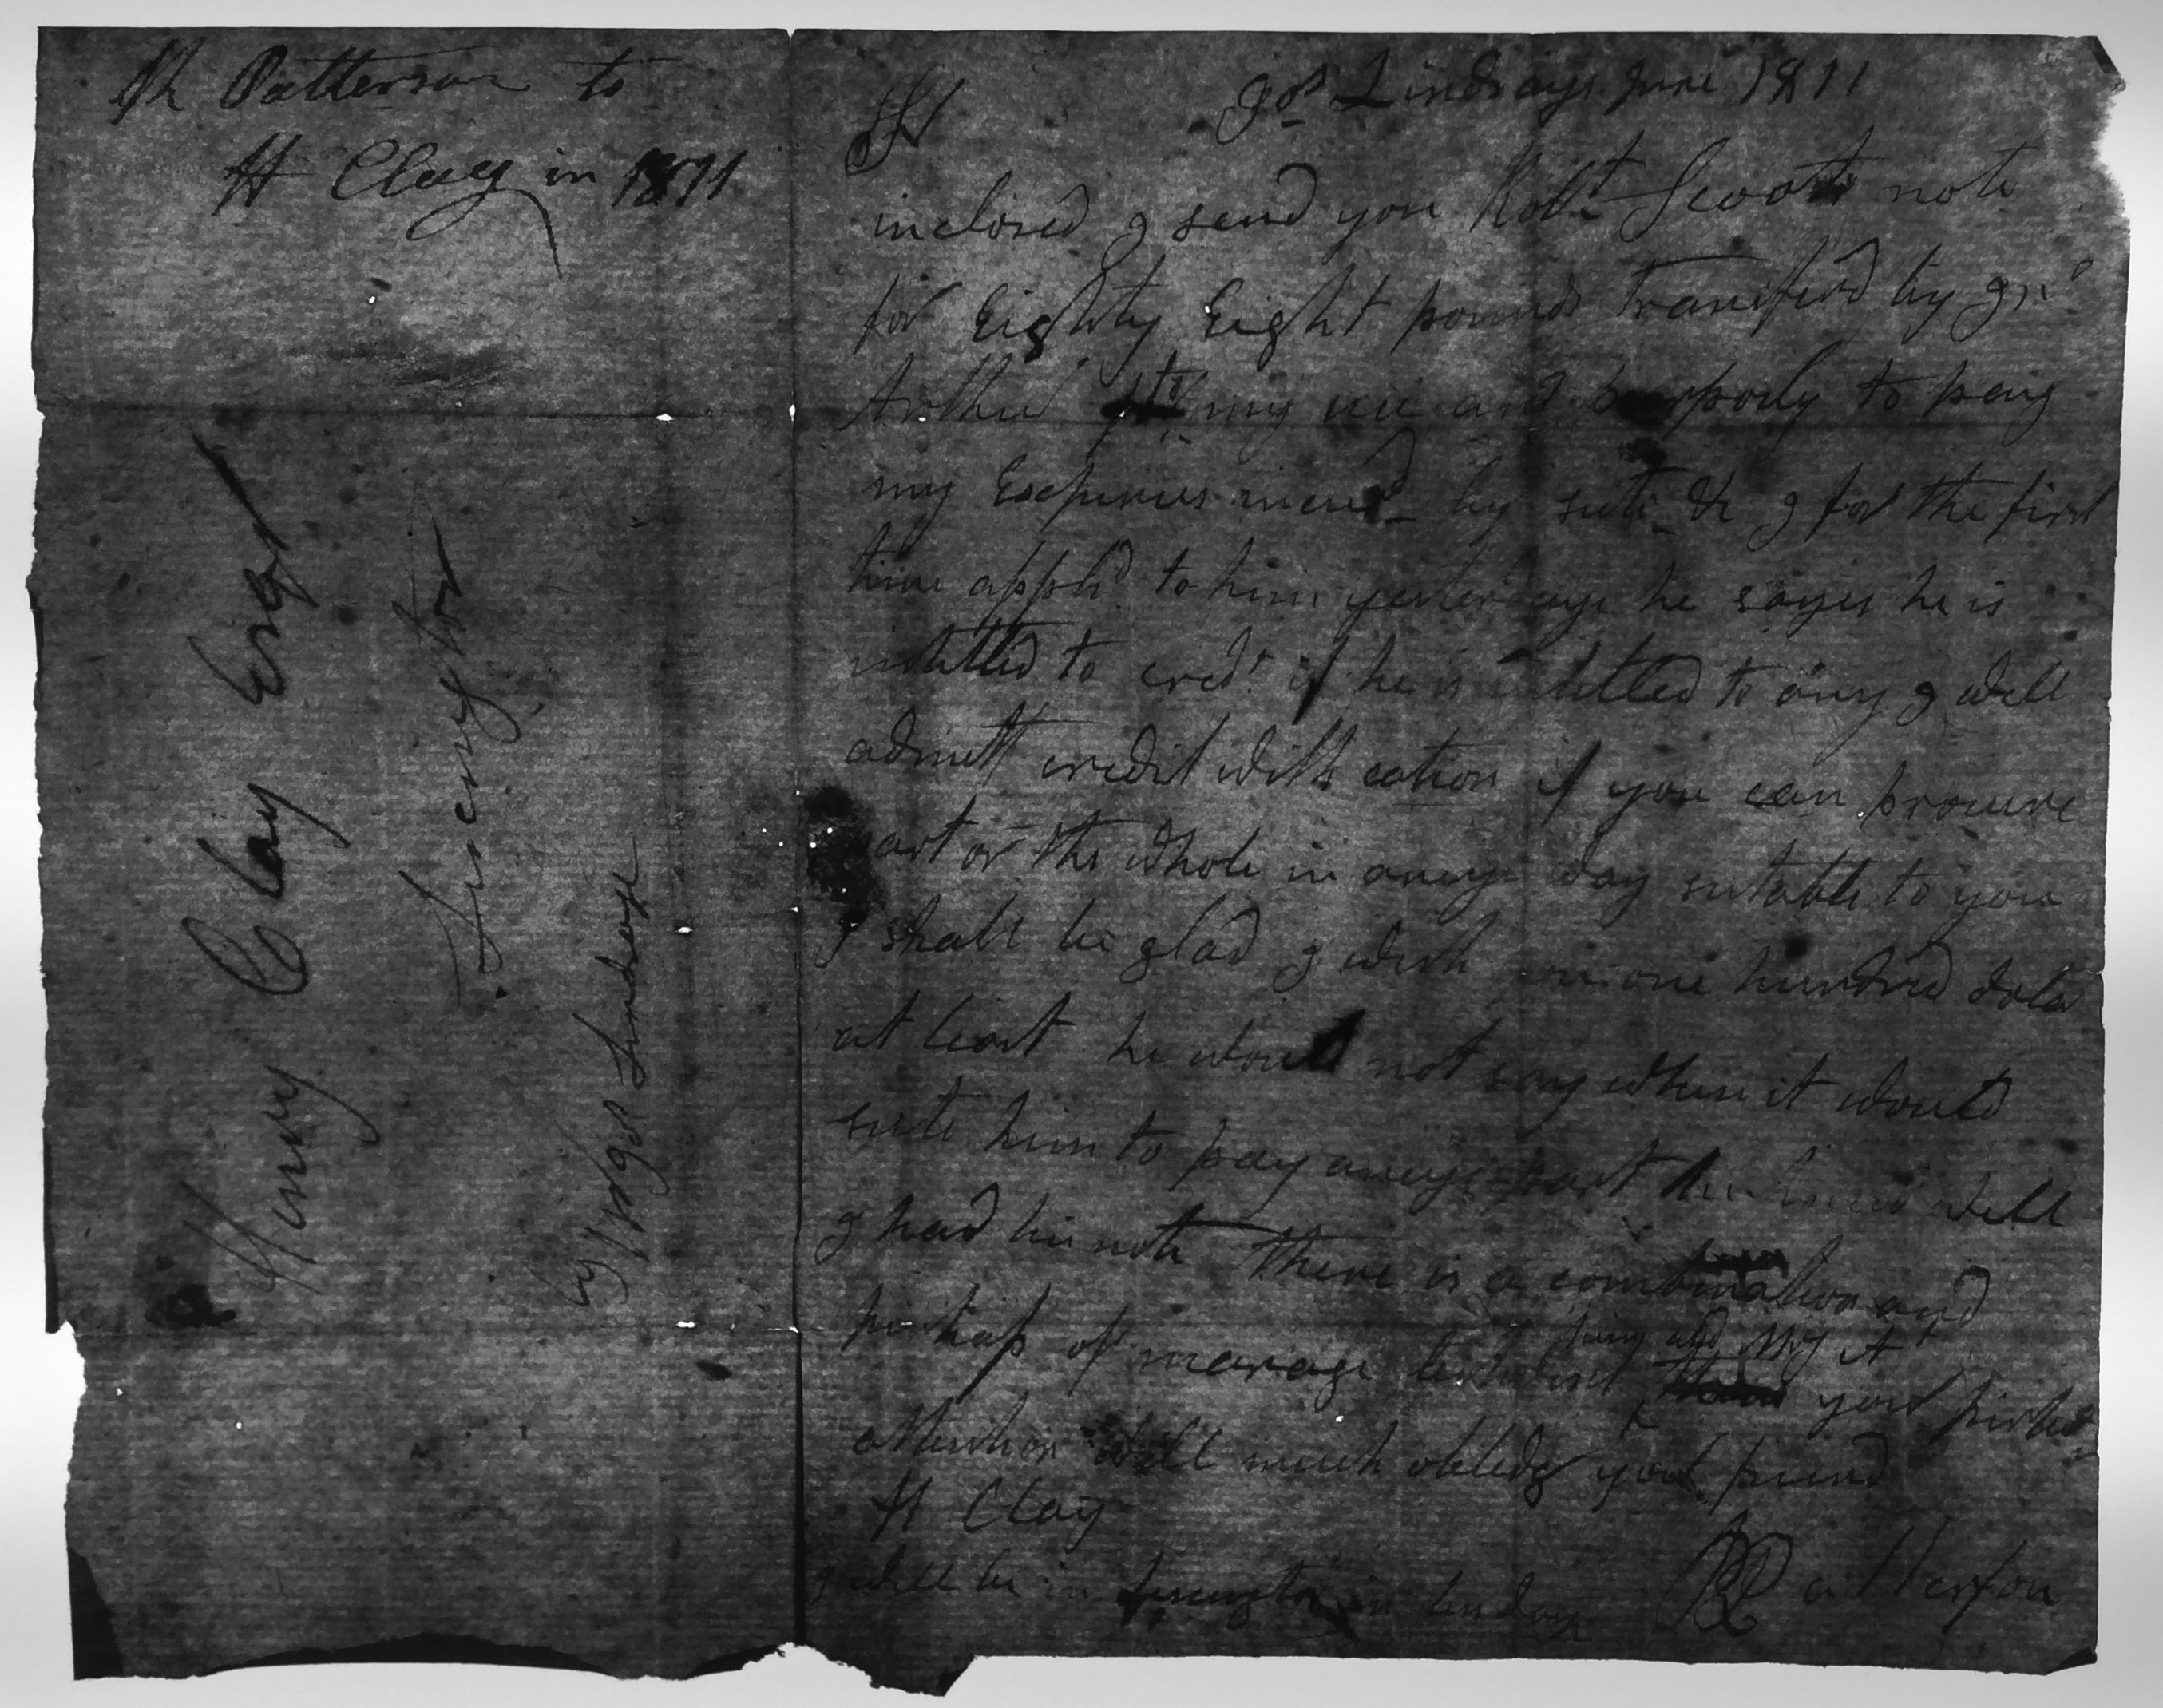 Col. Robert Patterson to Henry Clay, June 1811, showing chain lines (MS-236, Box 1, Folder 1)